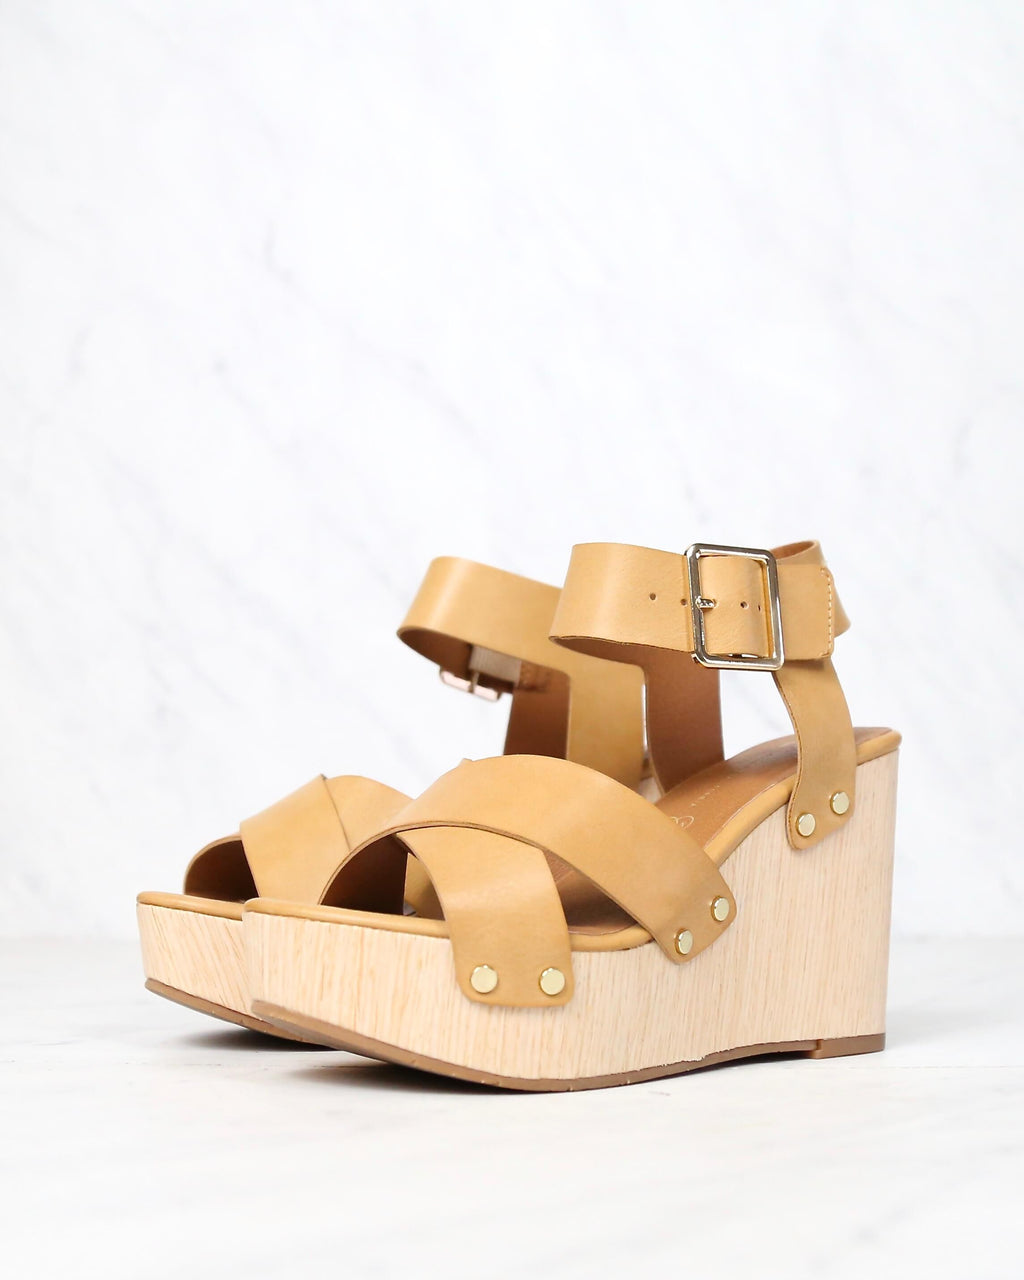 Final Sale - Bc Footwear - Teeny Vegan Platform Wedge Sandals - Tan